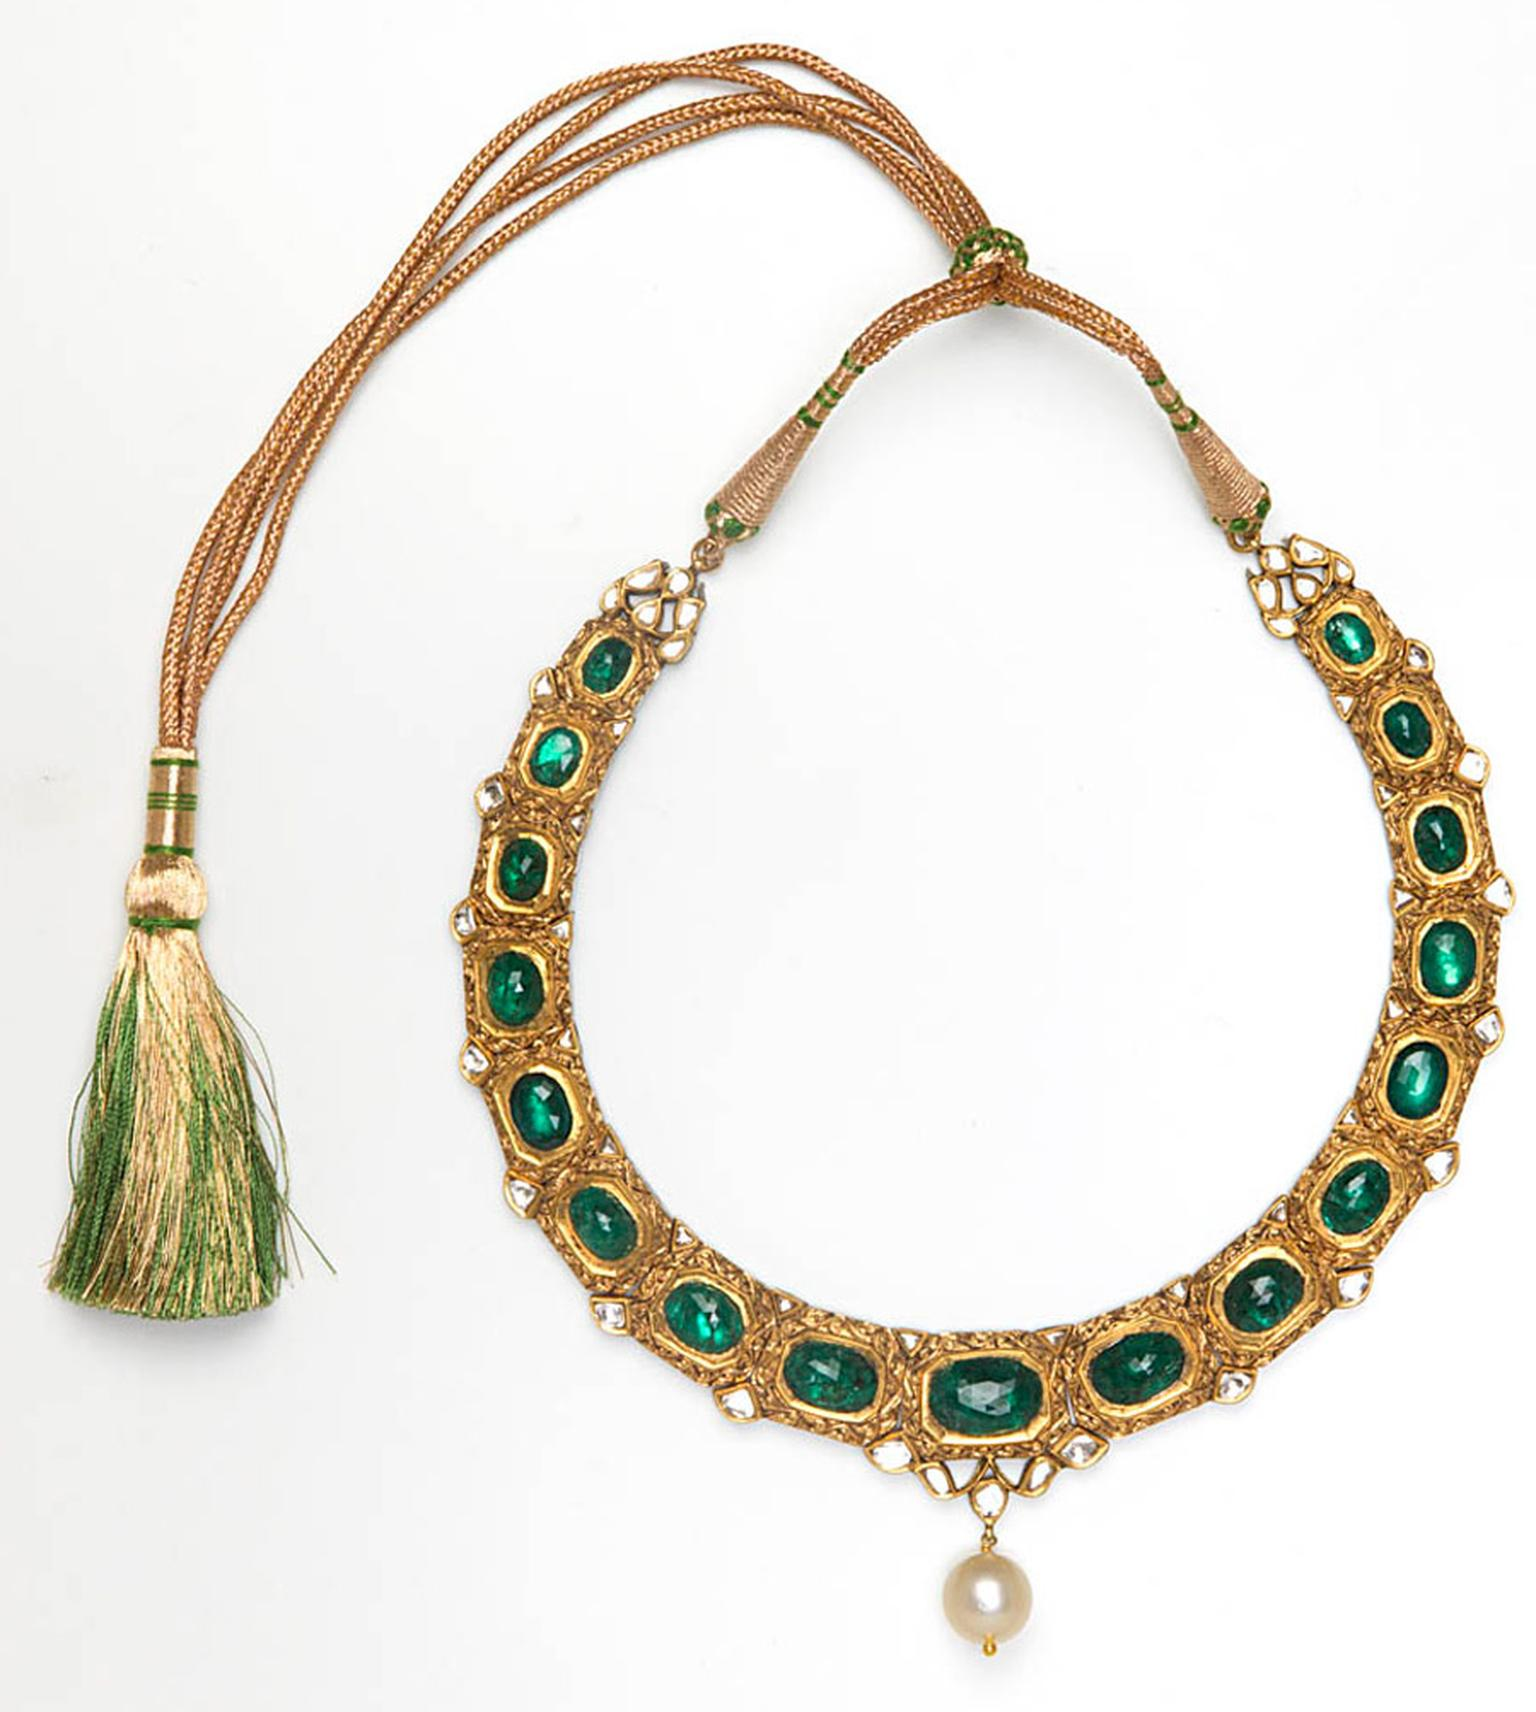 Amrapali-Yellow-gold-and-Emerald-tassel-necklace.jpg